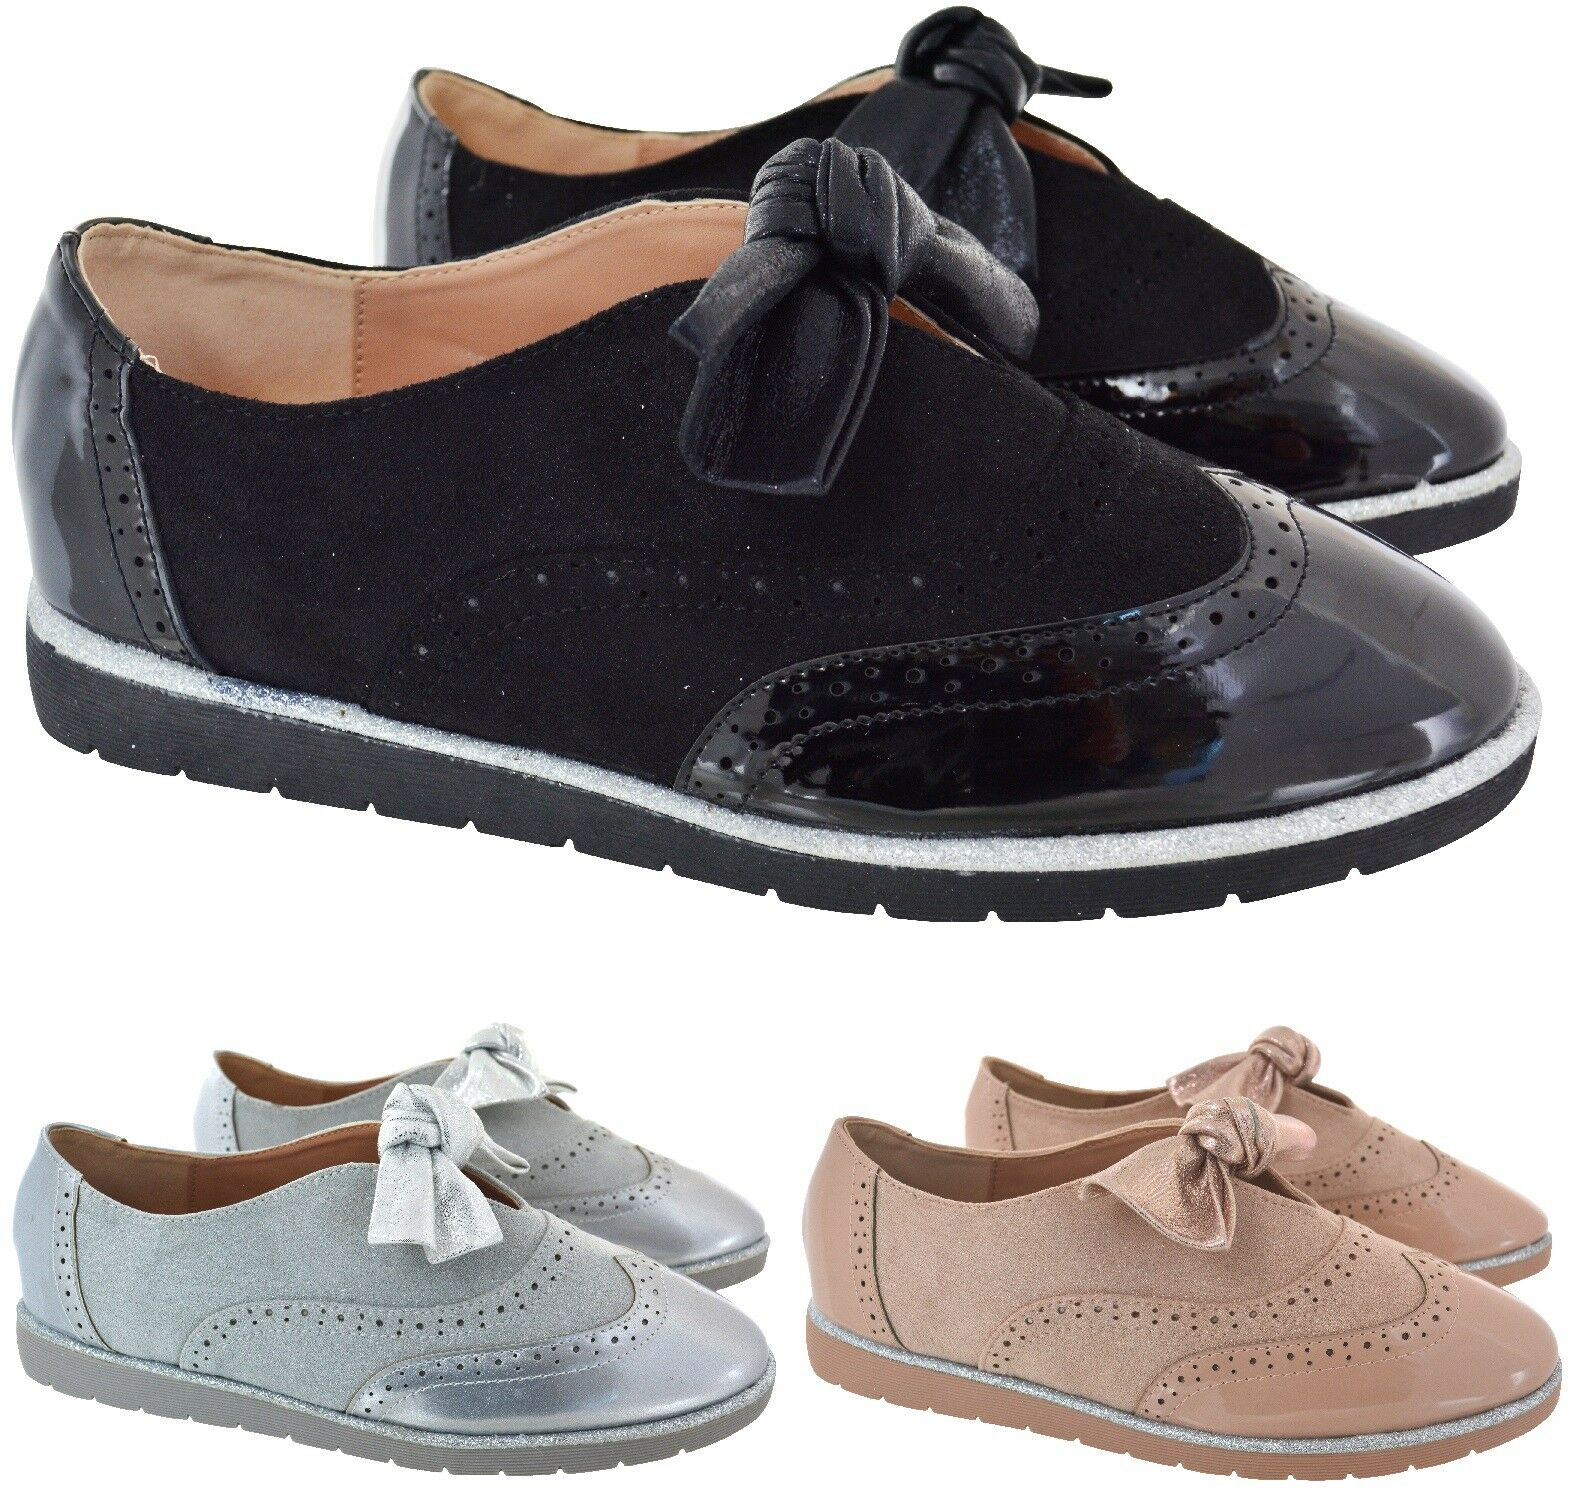 LADIES Mujer zapatos BROGUE BOW FLAT LOAFERS WORK OFFICE SCHOOL SMART zapatos Mujer Talla 3-8 ce872f